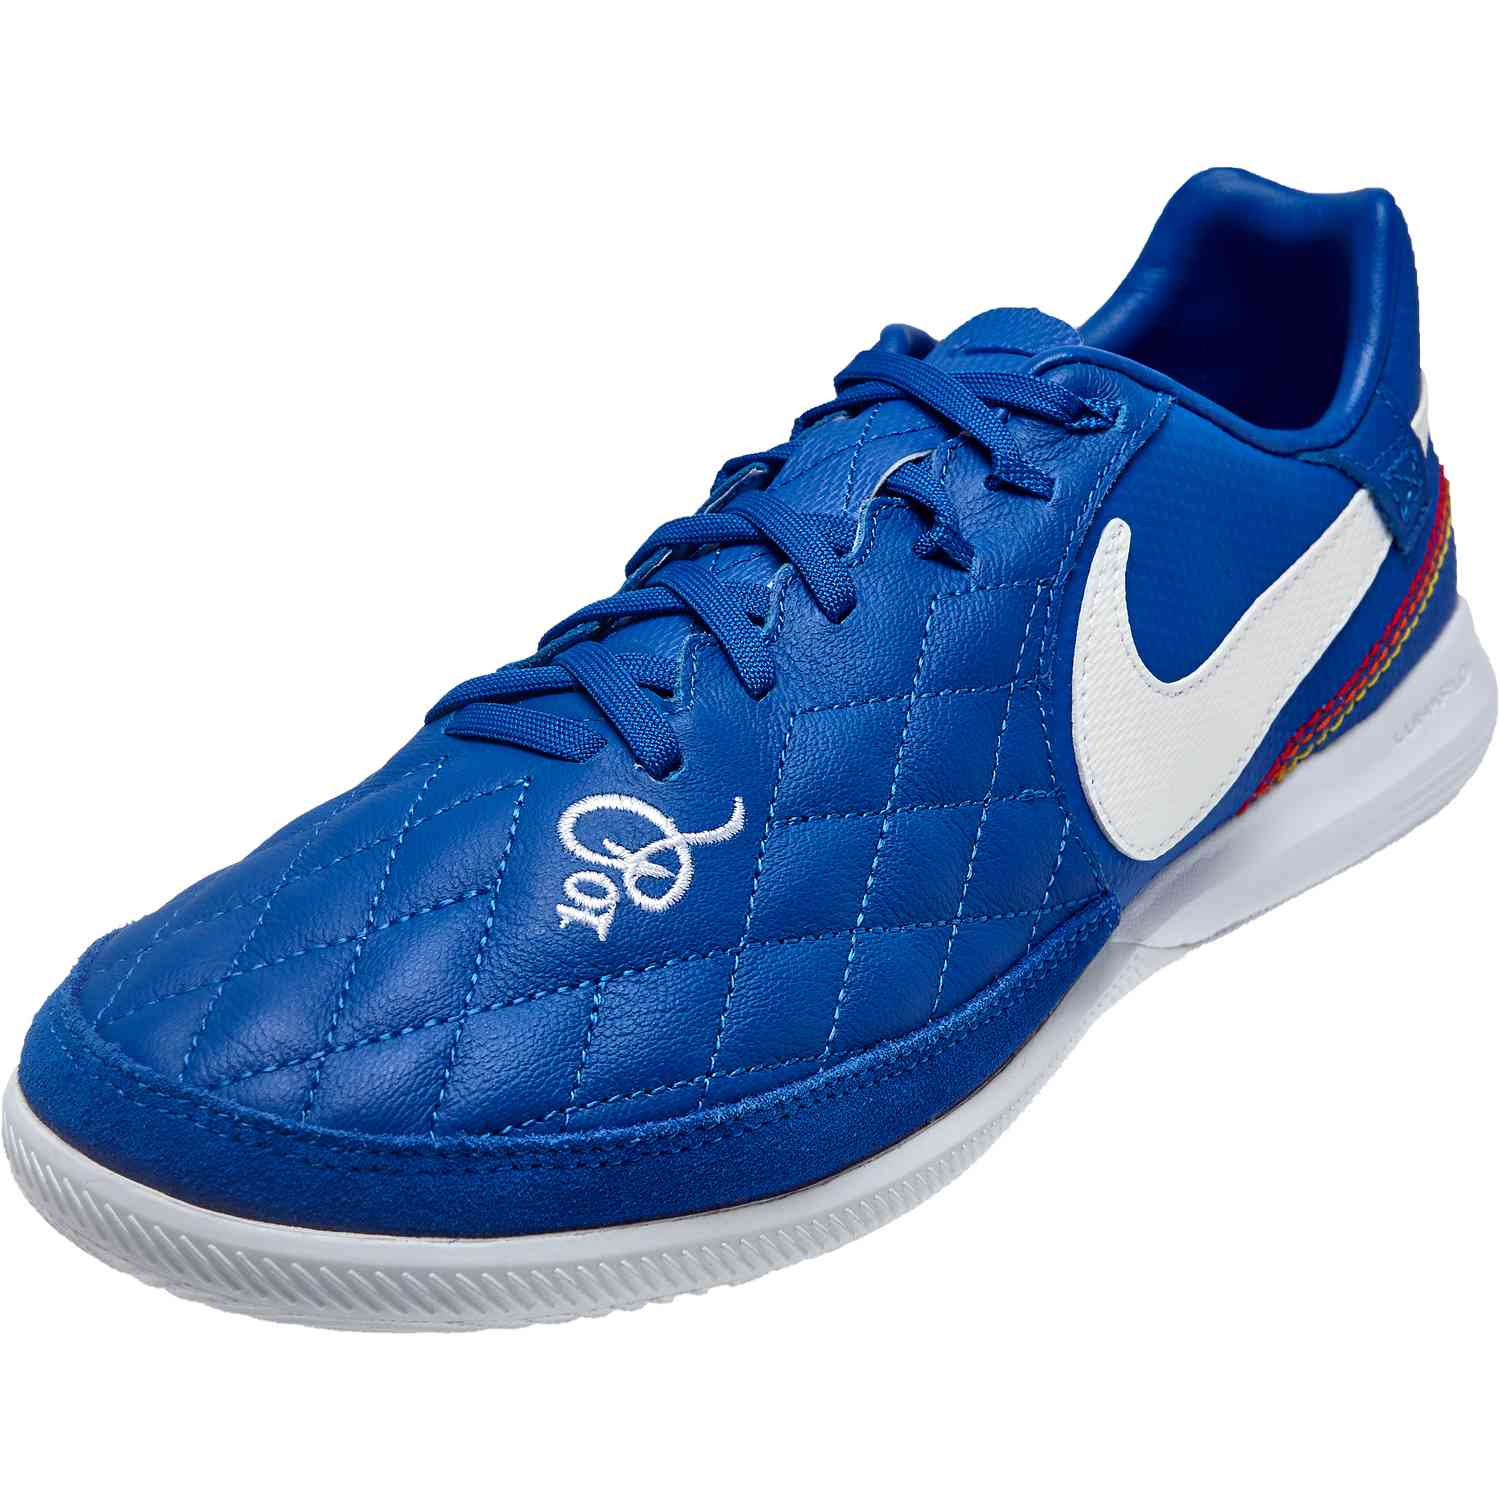 633bd0939abac Nike 10R Tiempo Legend 7 Pro IC - Game Royal/White - SoccerPro